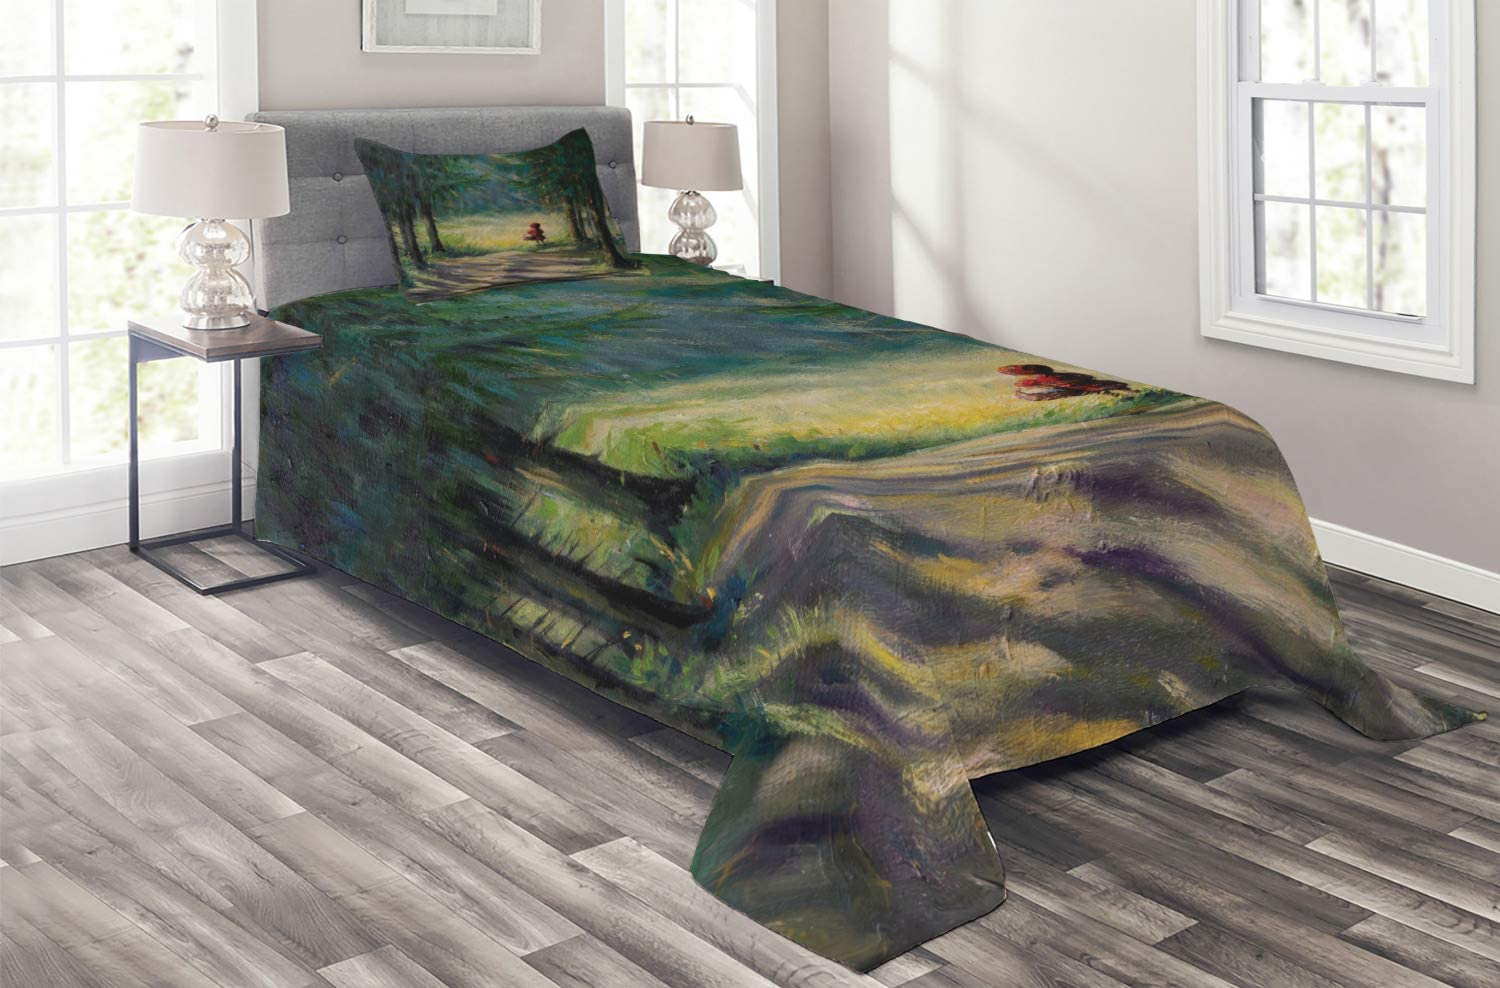 Ambesonne Fantasy Coverlet Max 81% Bombing new work OFF Watercolor Traditional Story Illustr